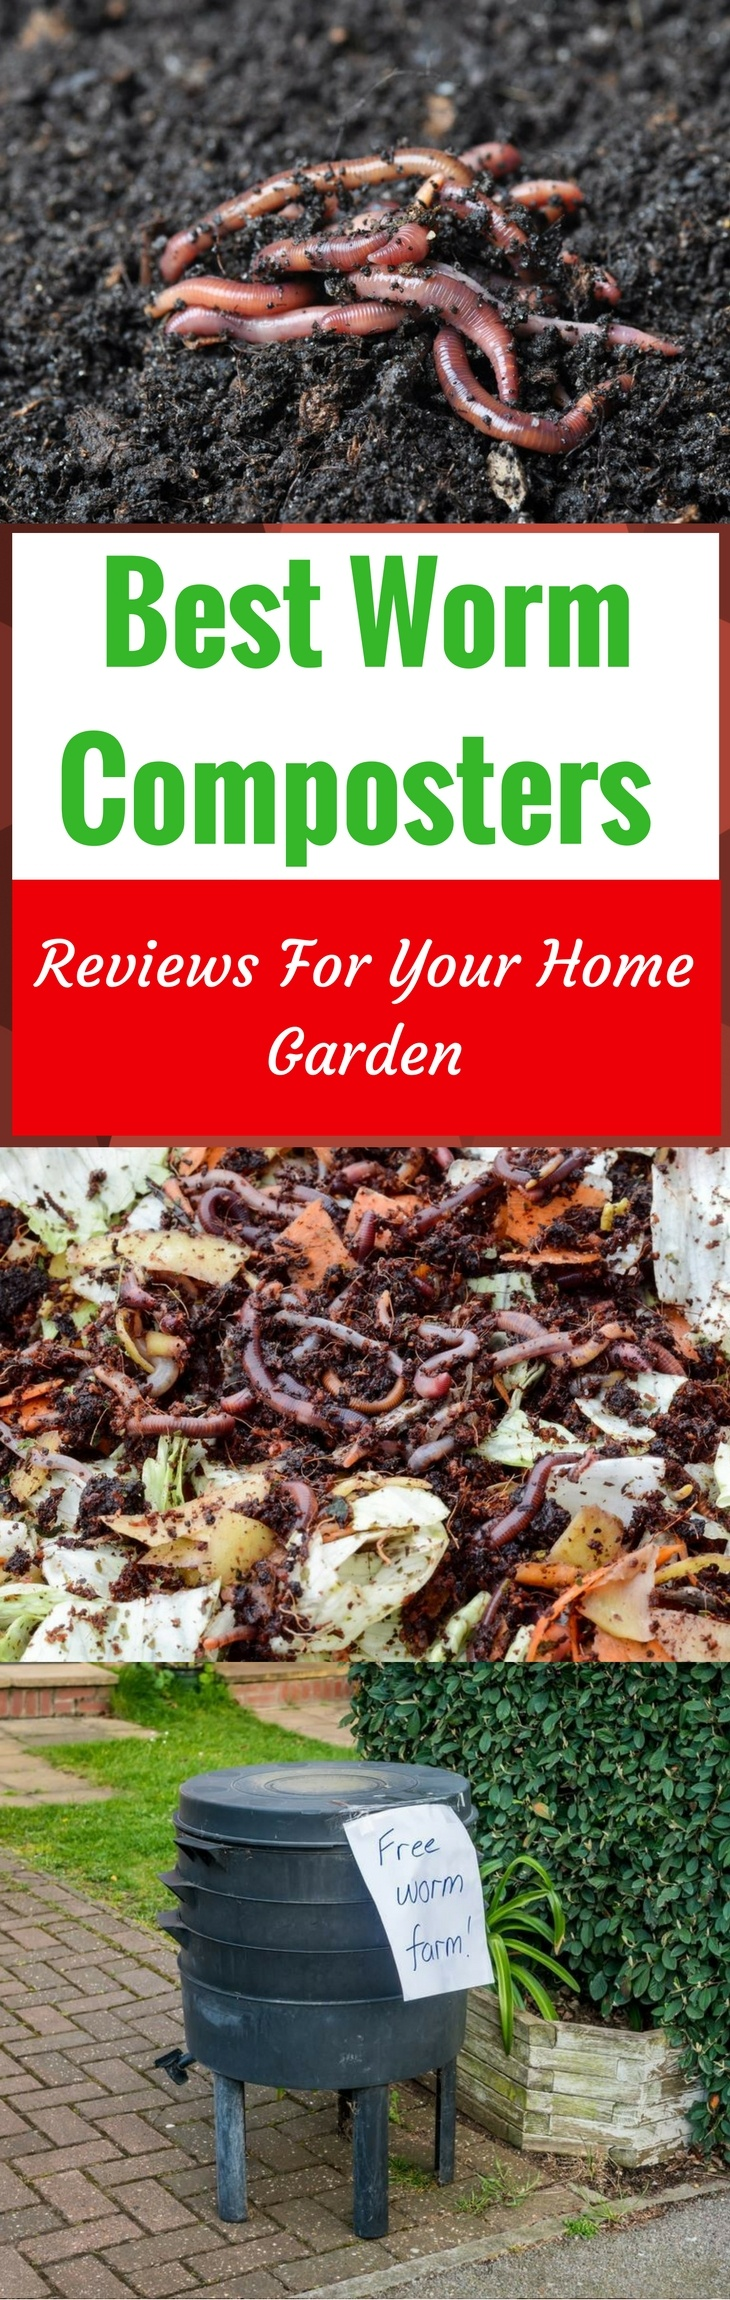 REVIEWS FOR YOUR HOME GARDEN